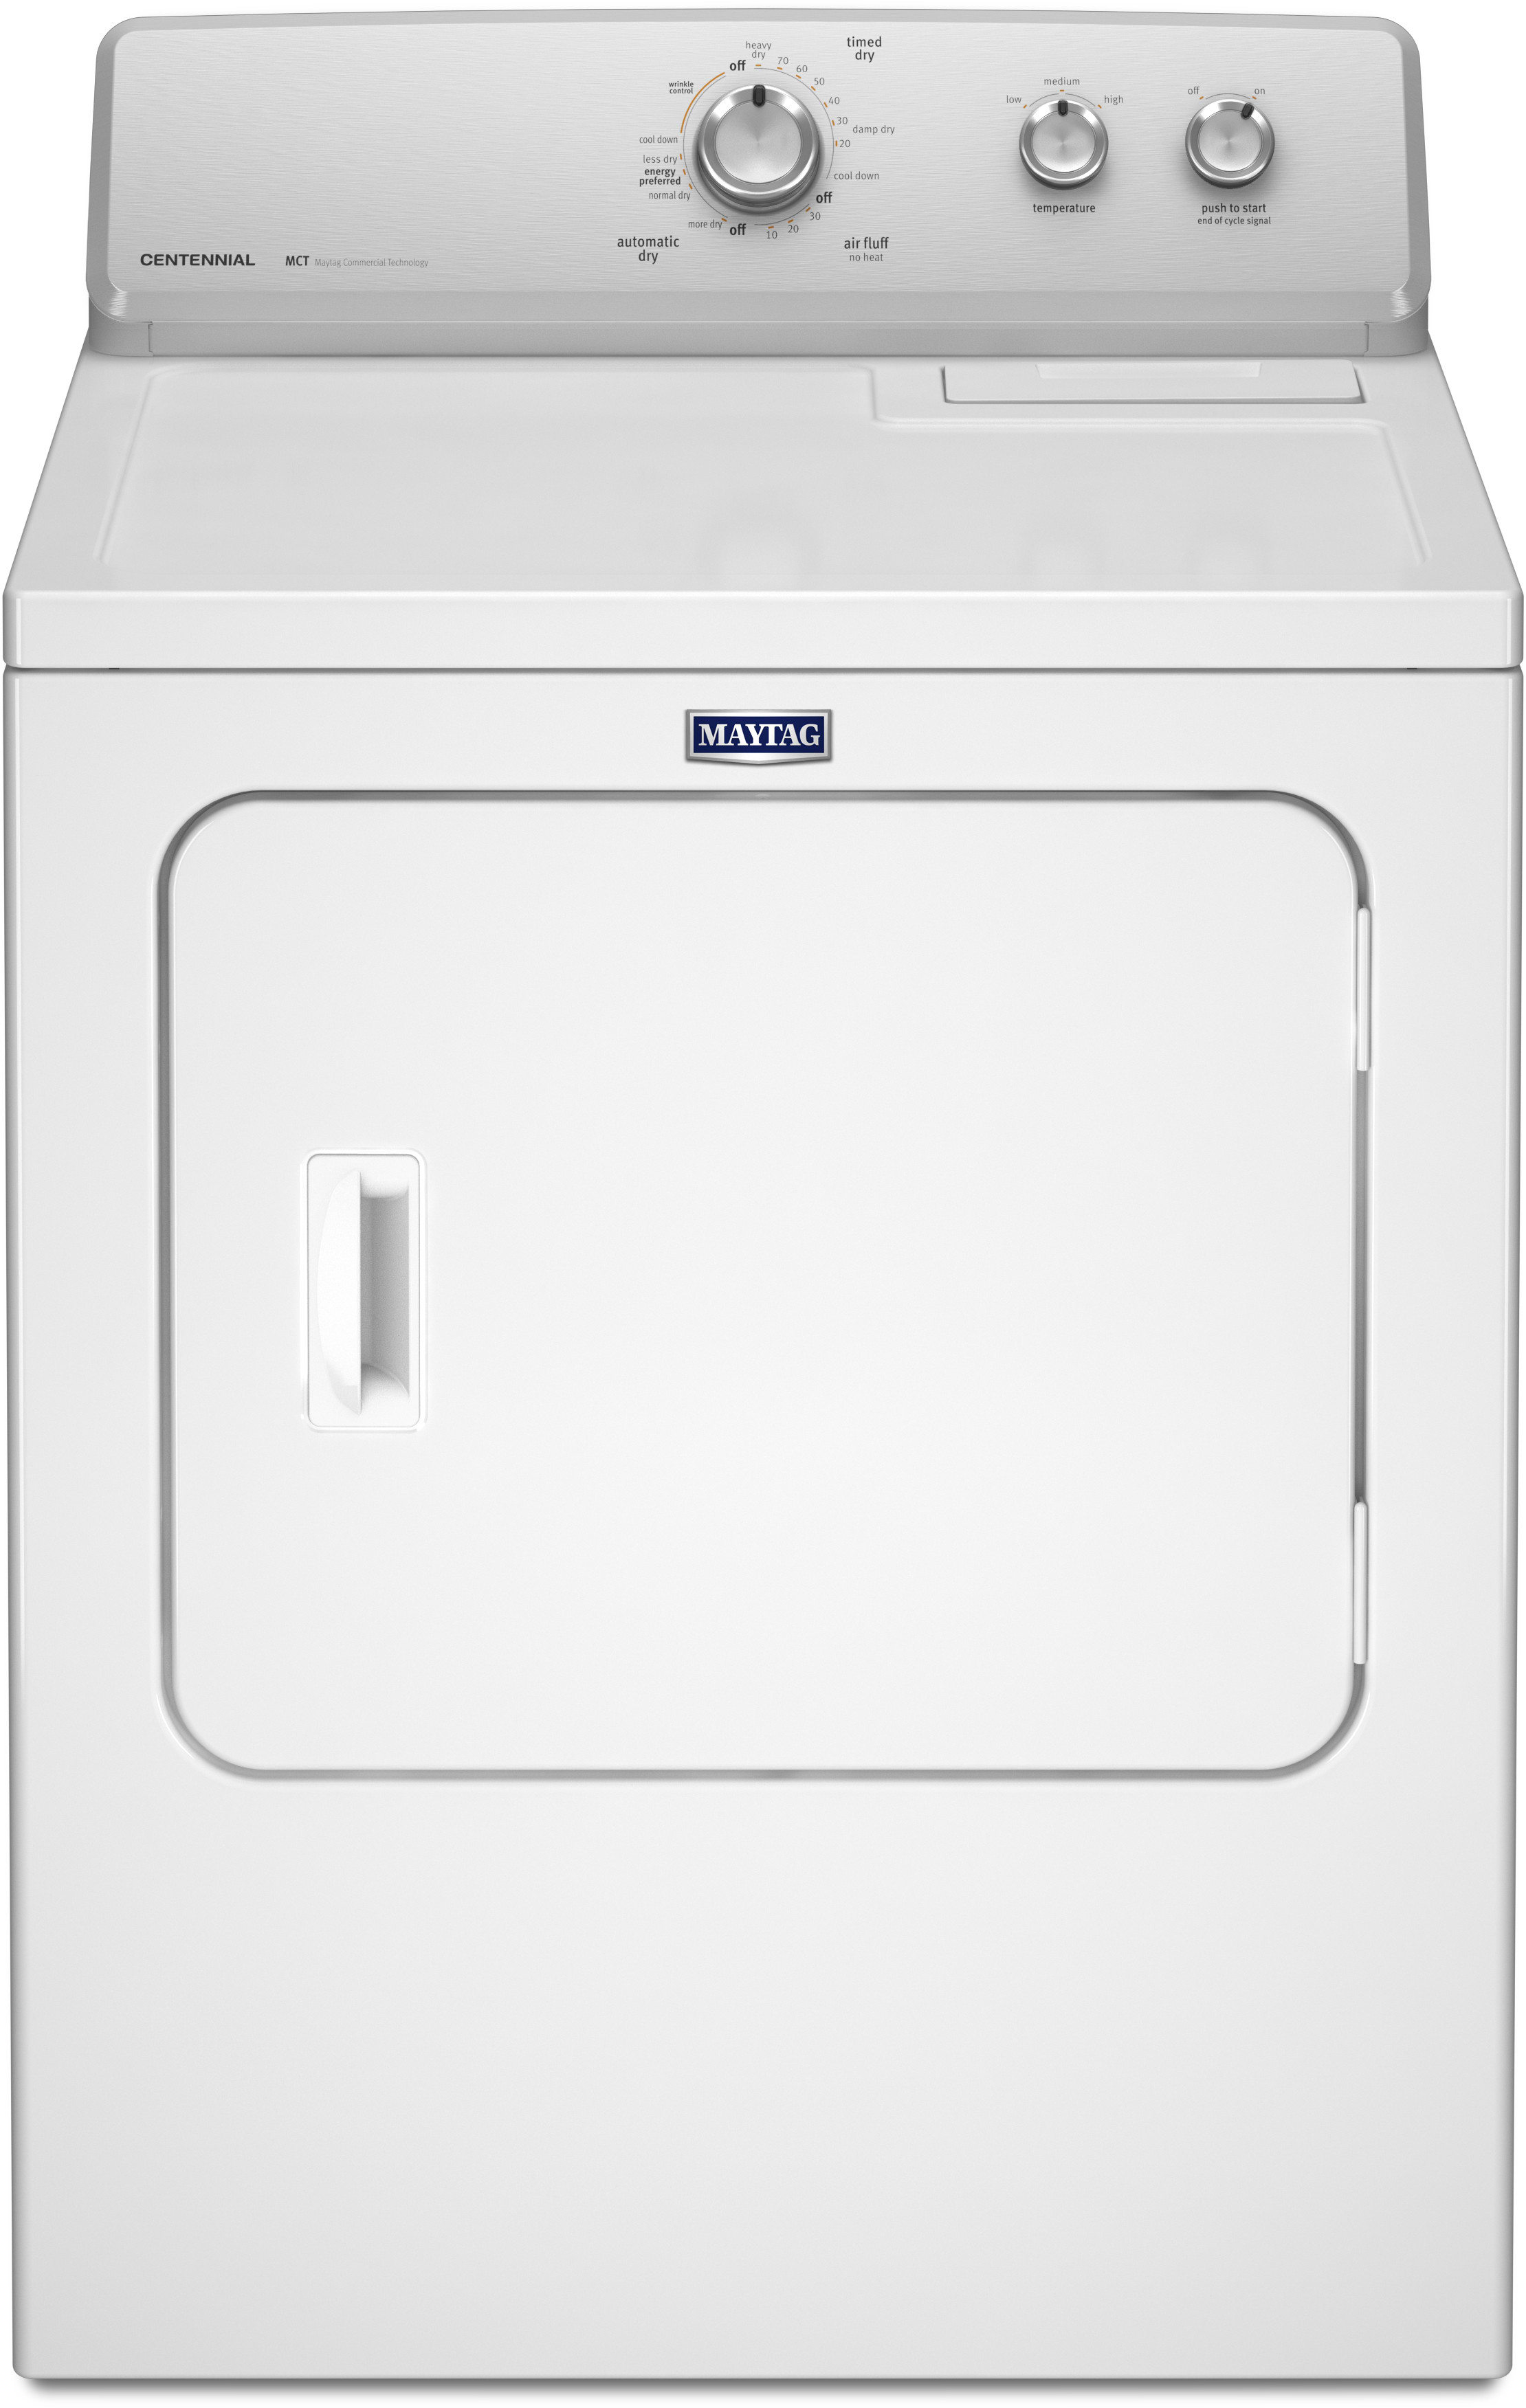 Maytag Medc215ew 29 Inch 7 0 Cu Ft Electric Dryer With